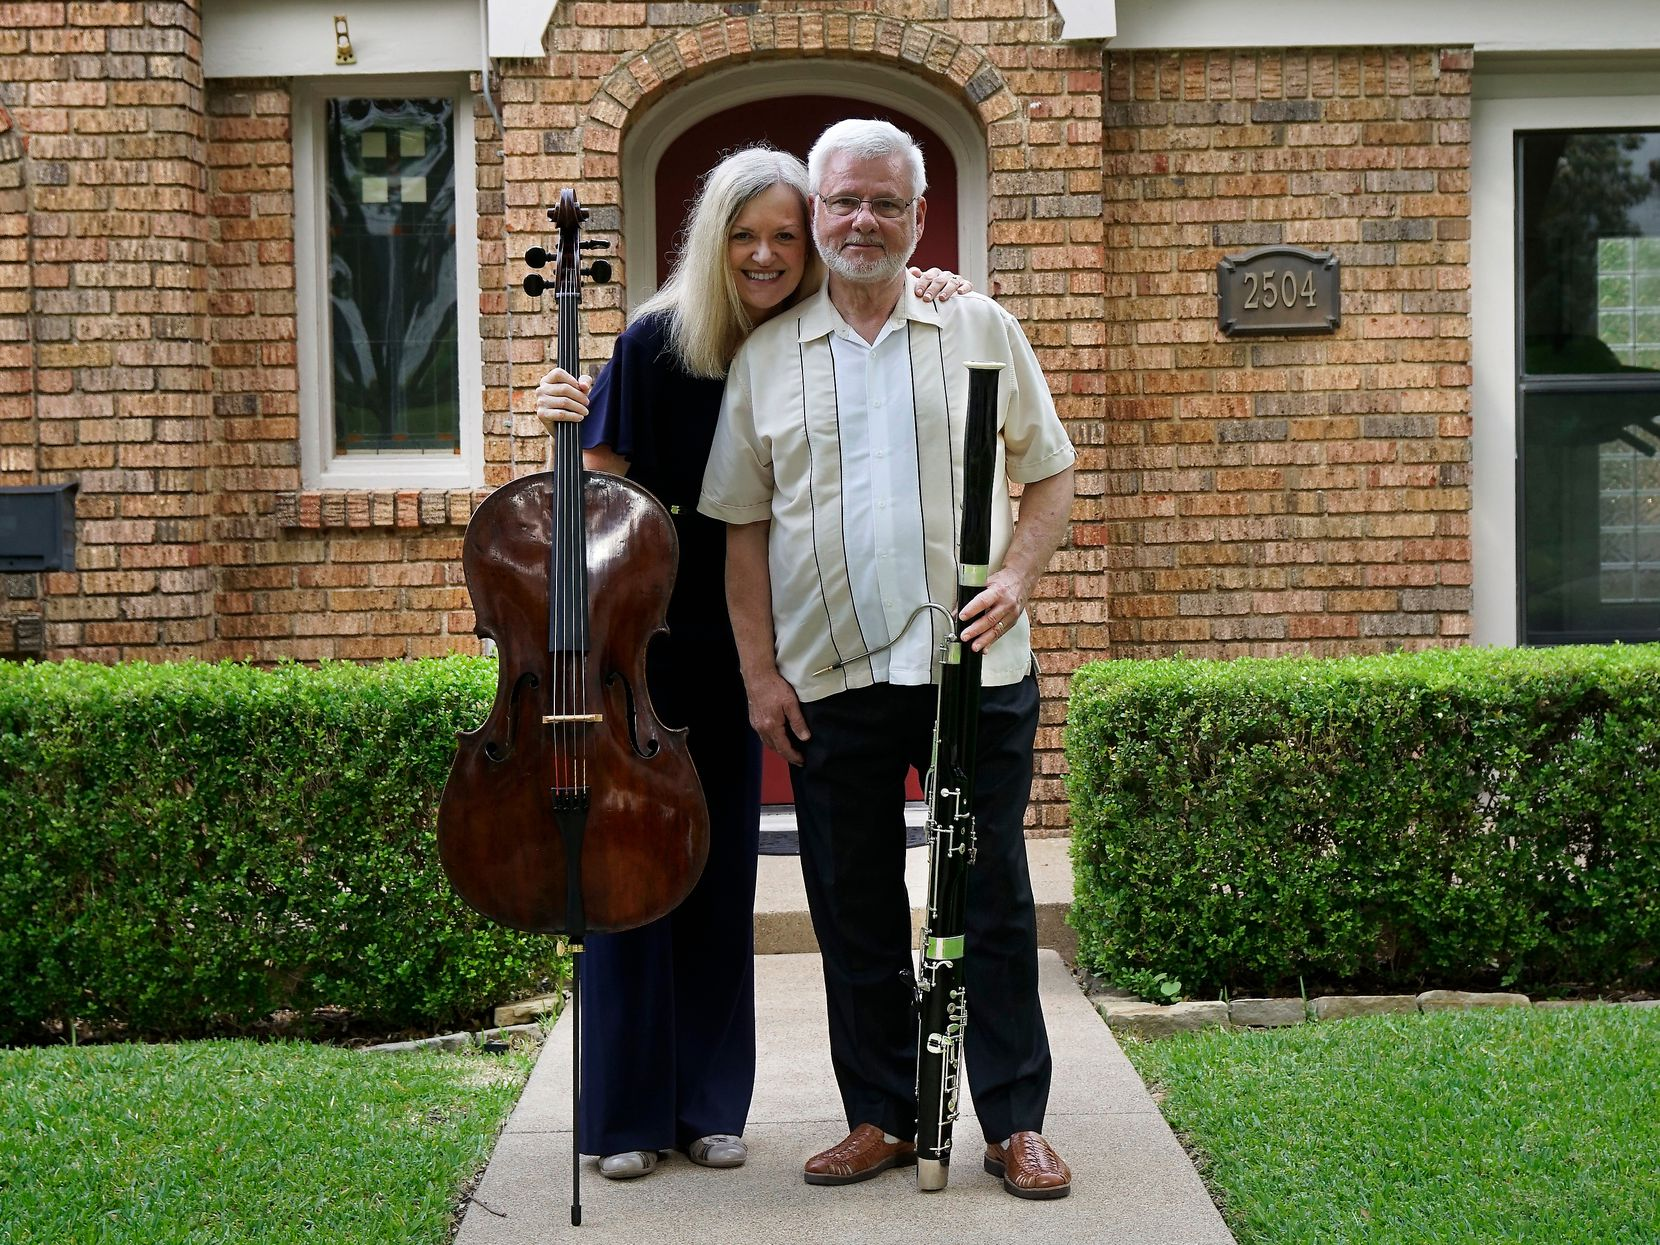 Karen and Kevin Hall, shown at their home in Fort Worth, are looking forward to not stressing about their music in retirement.